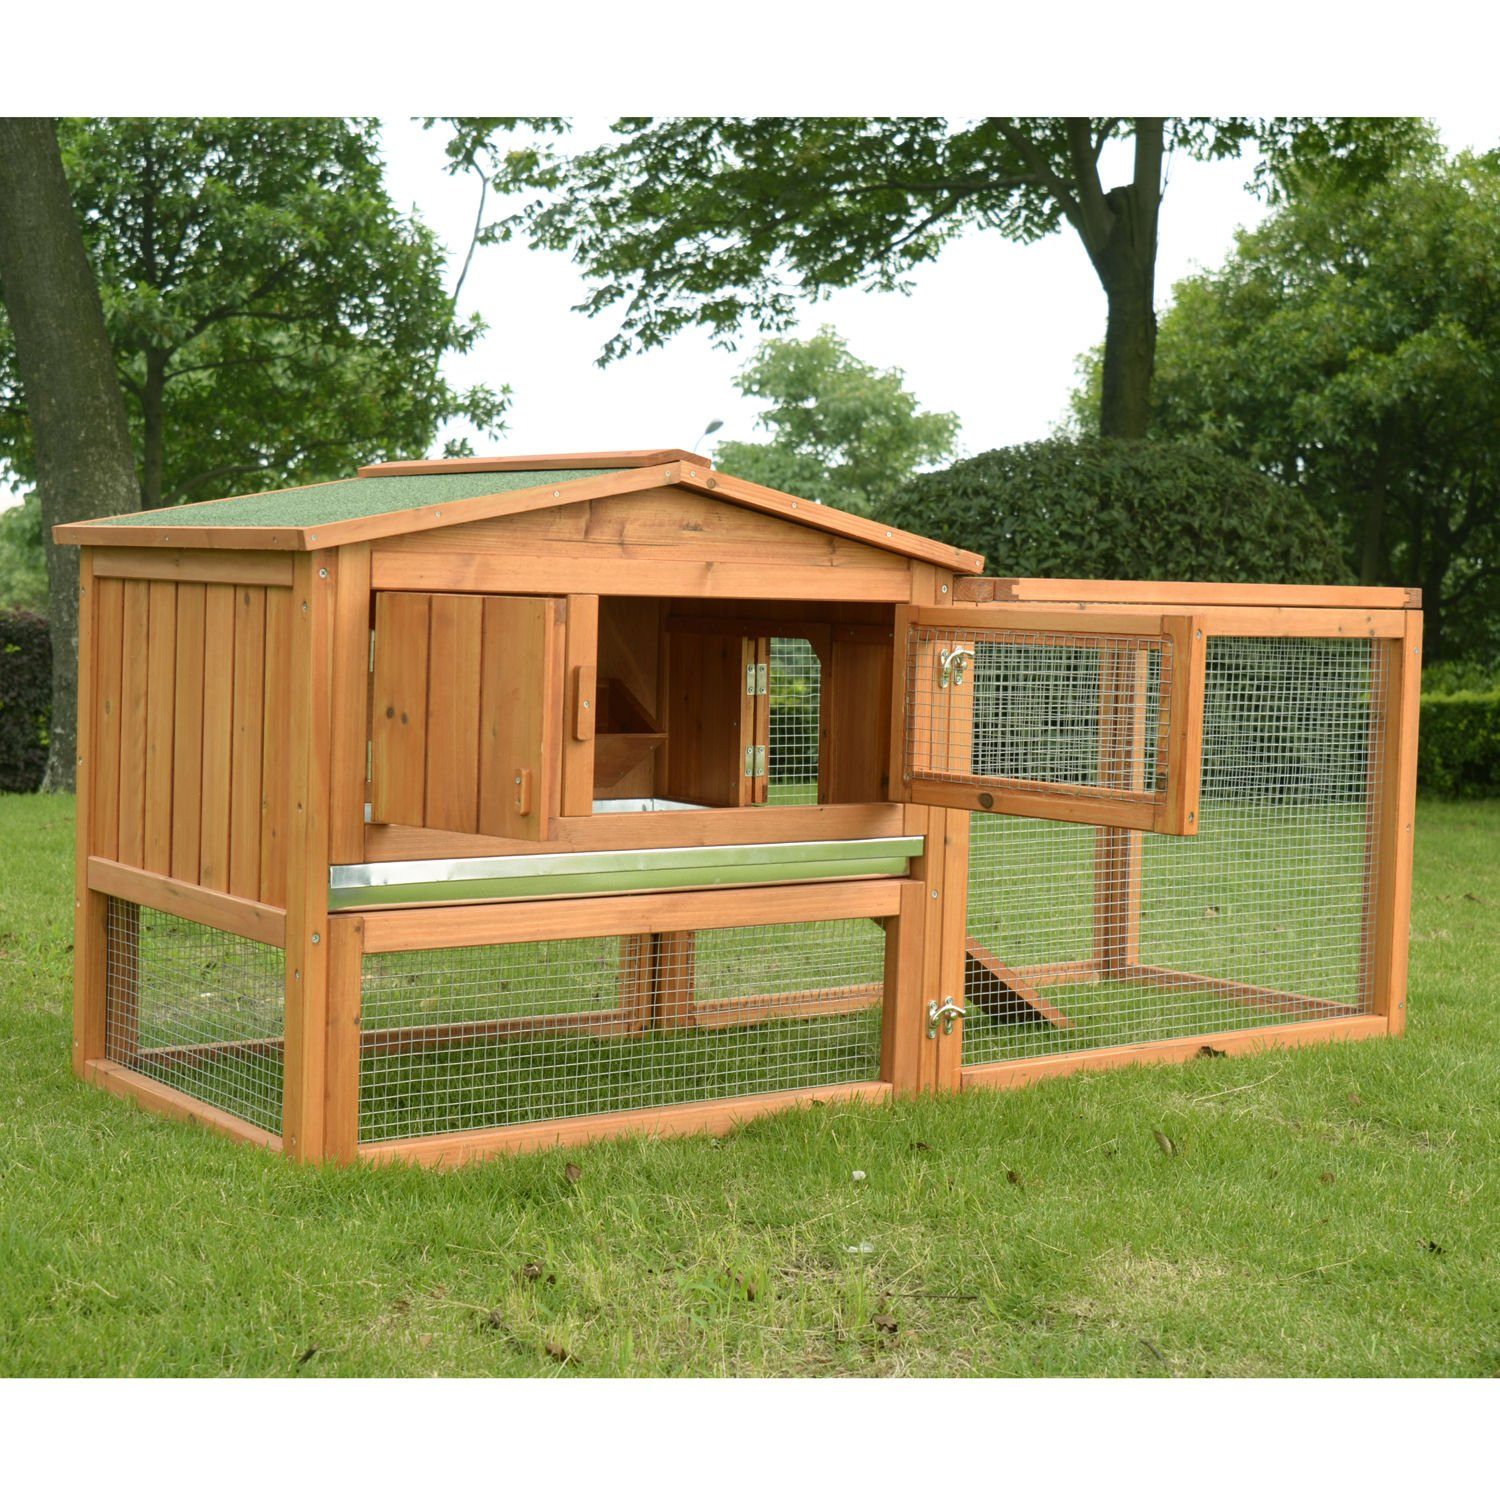 PawHut 62'' Outdoor Guinea Pig Pet House/Rabbit Hutch Habitat with Run by PawHut